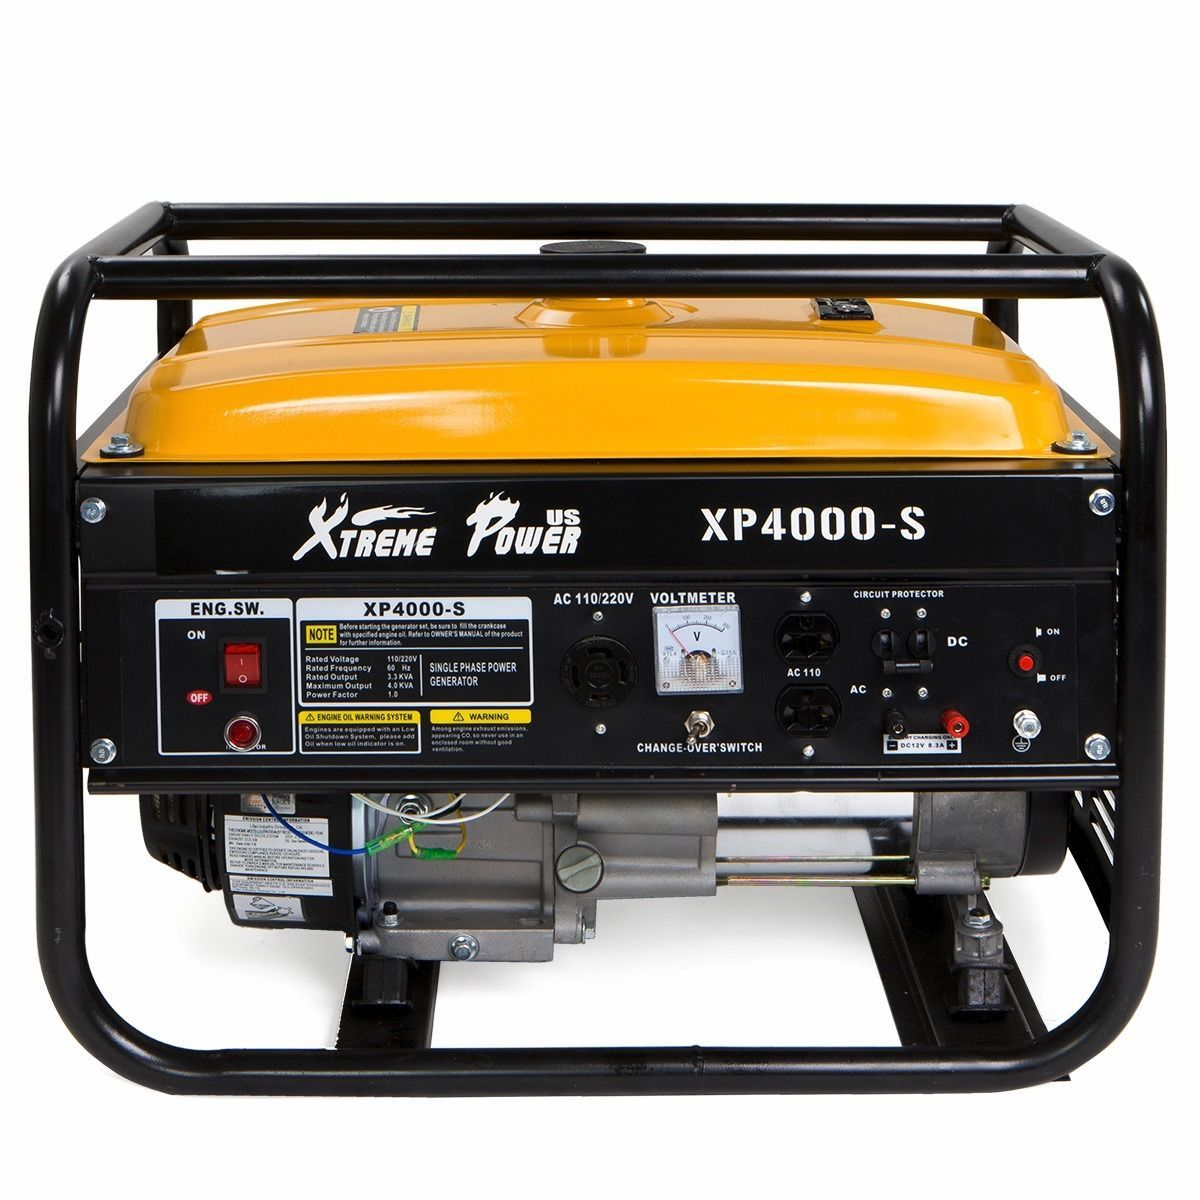 Incredible Details About Portable Generator 4000 Watt Duromax 7 Hp Gas Download Free Architecture Designs Scobabritishbridgeorg